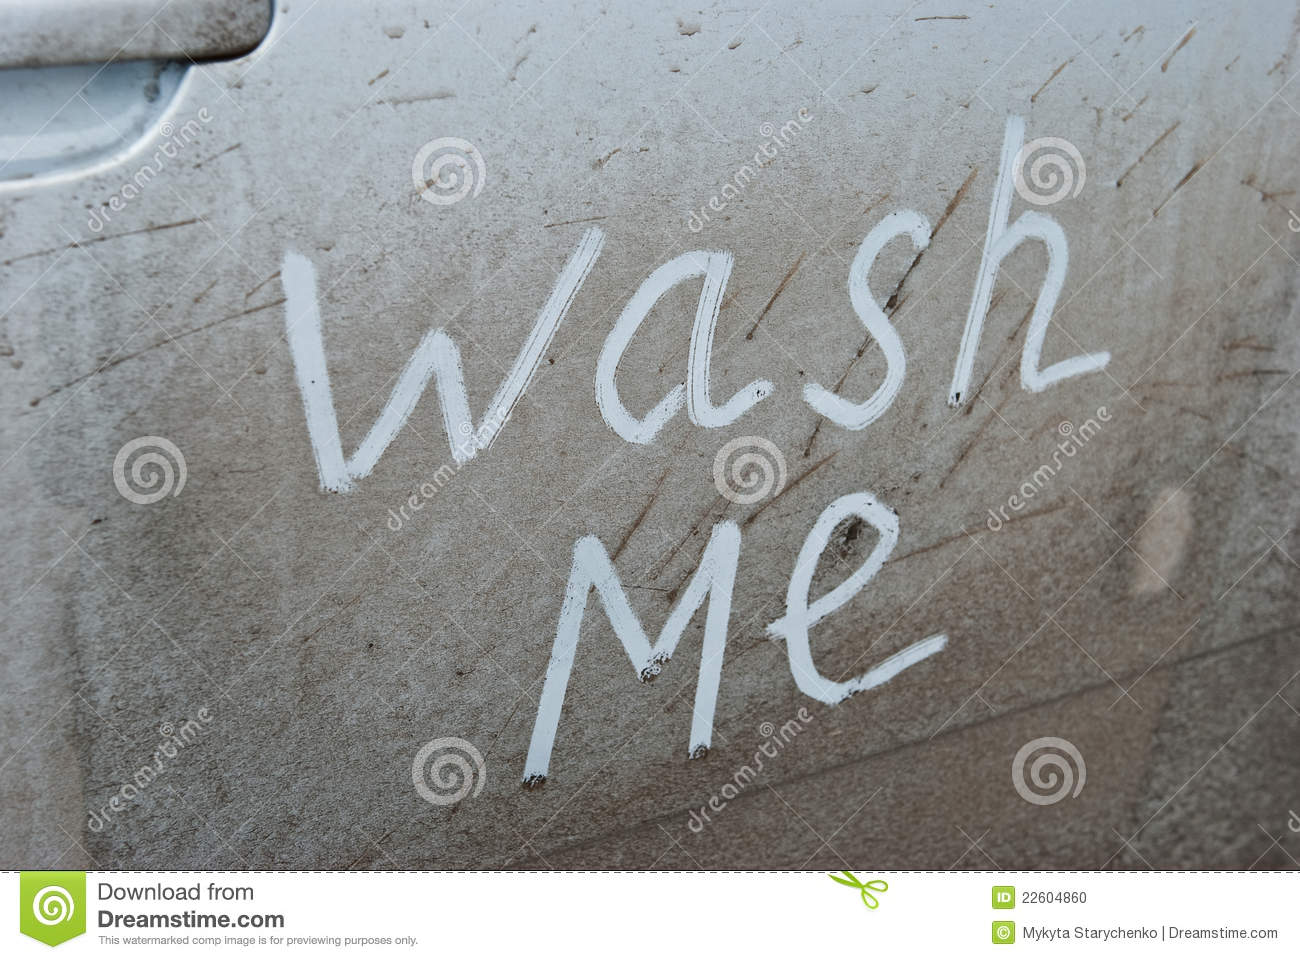 Wash Me Written On A Dirty Car Stock Photo Image 22604860